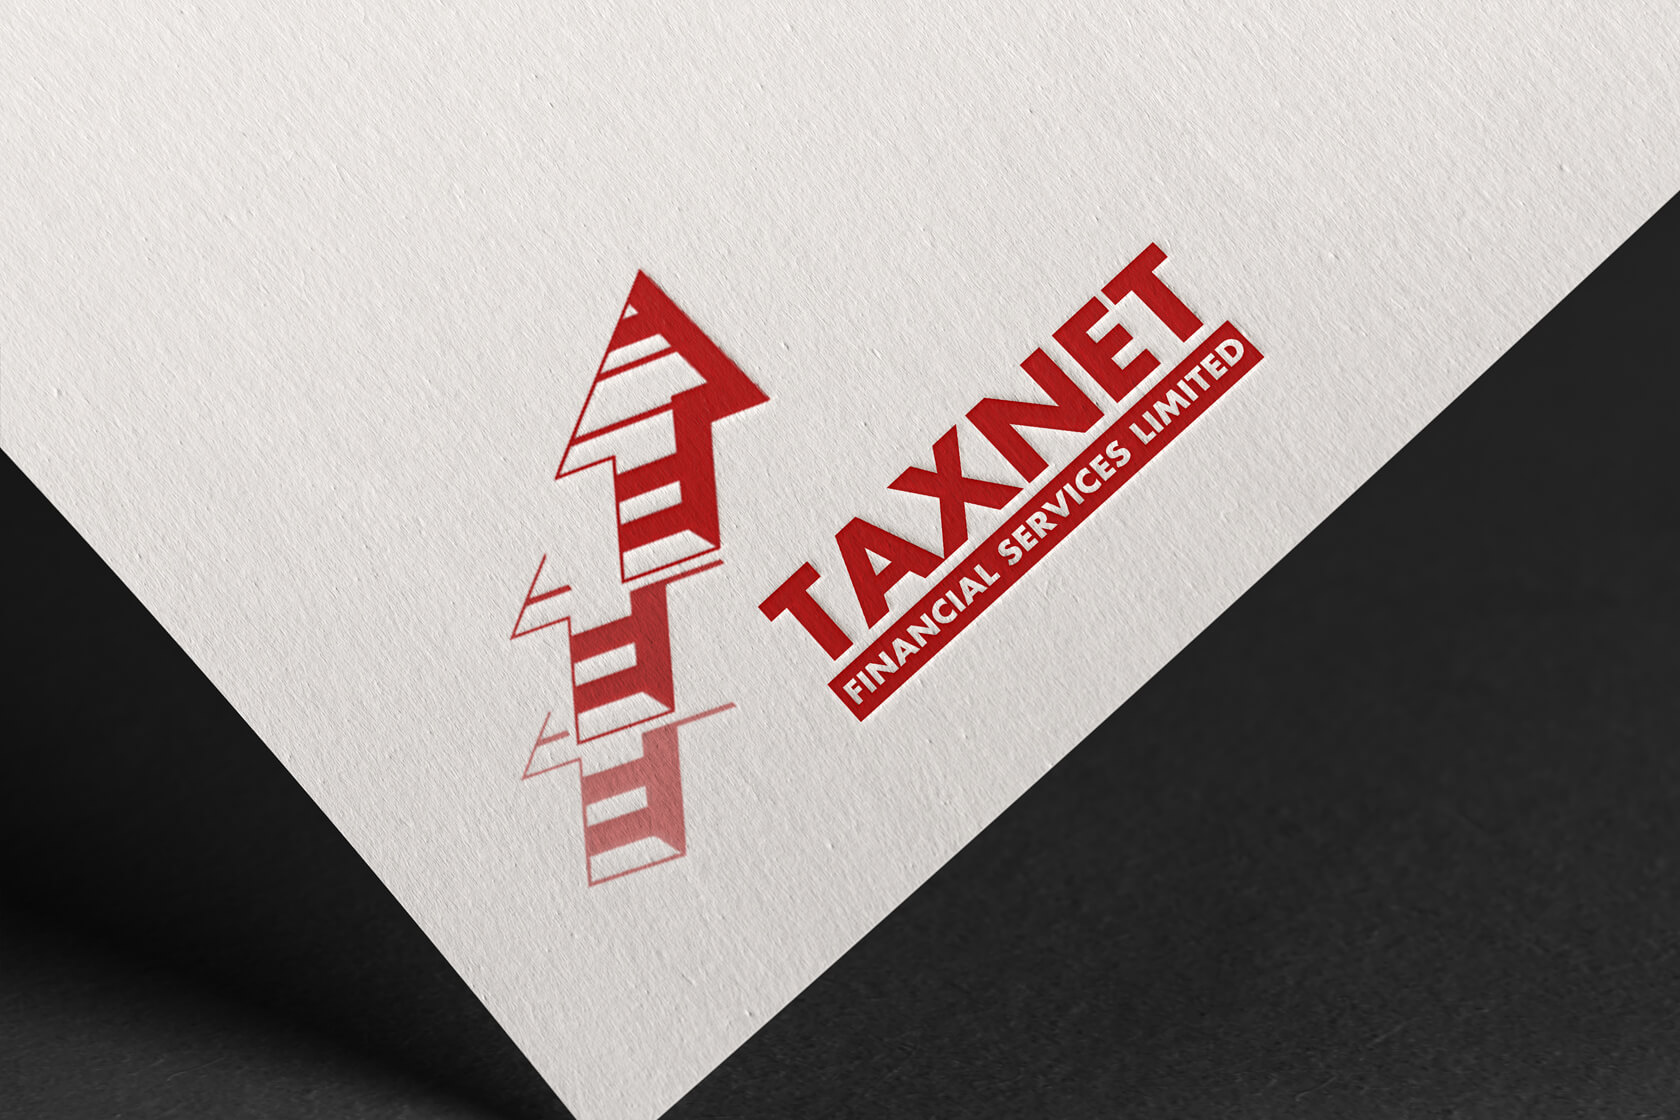 Taxnet Financial services old logo